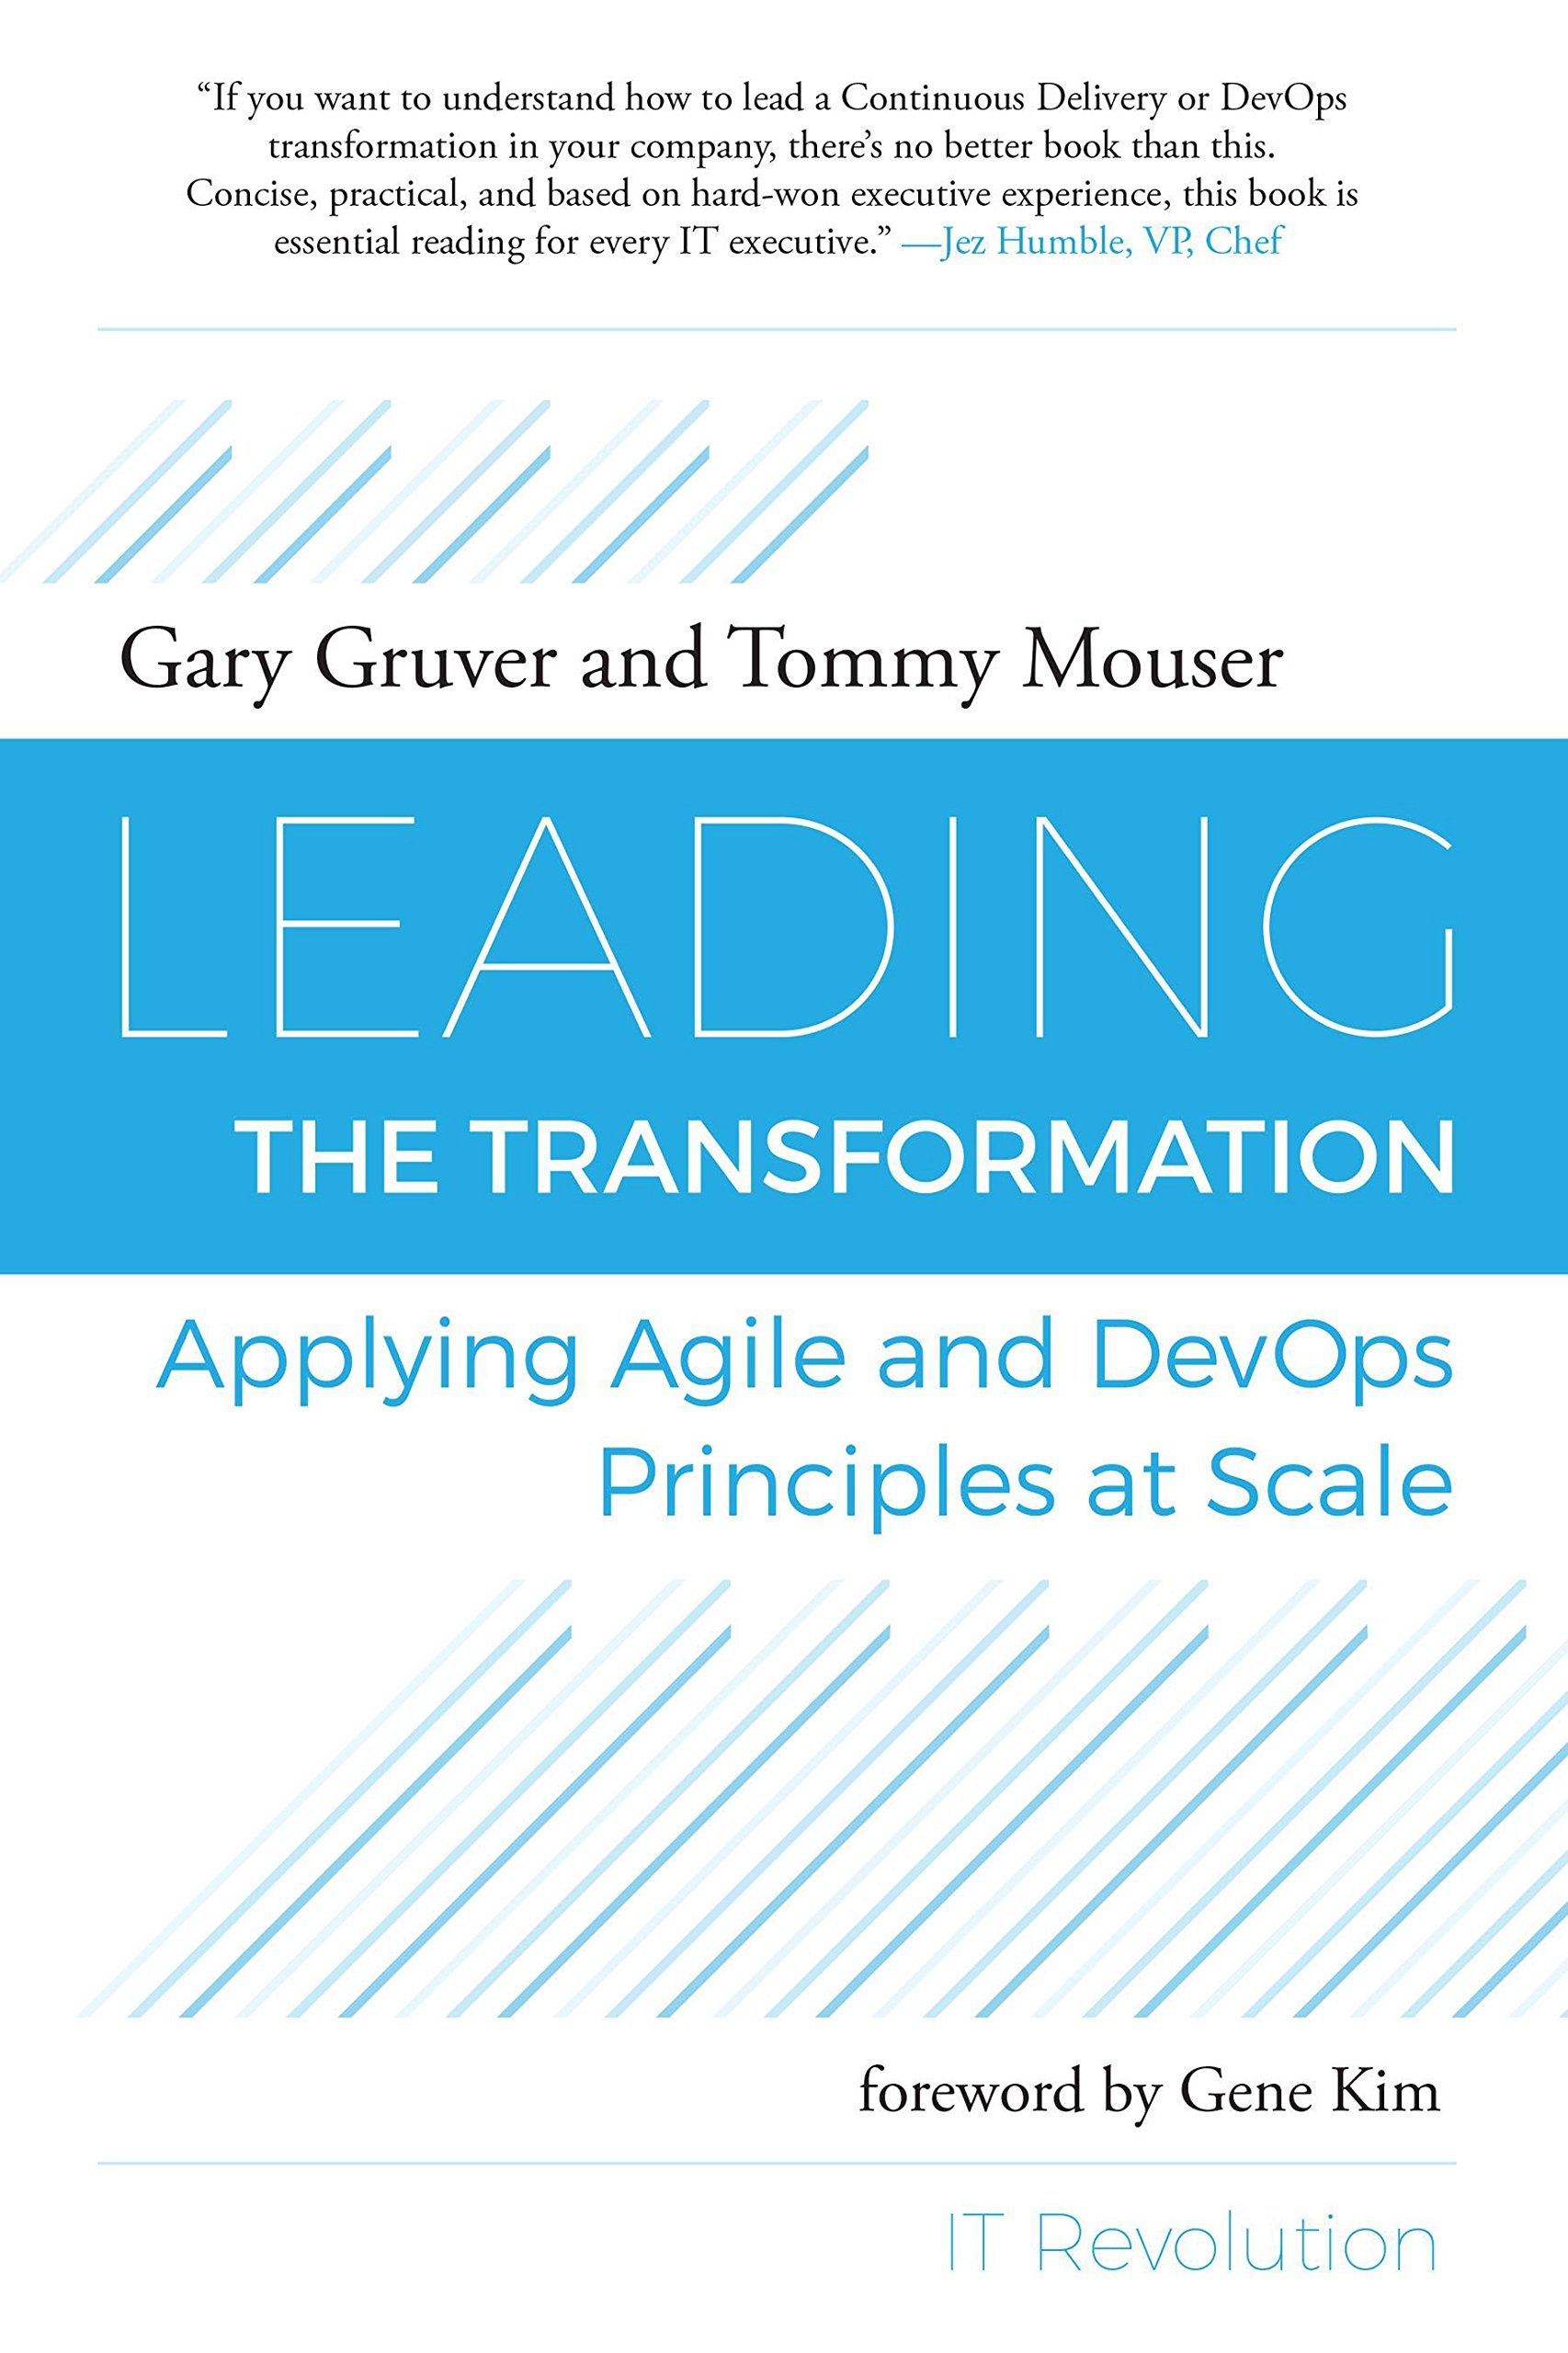 Leading the Transformation: Applying Agile and DevOps Principles at Scale Gary Gruver